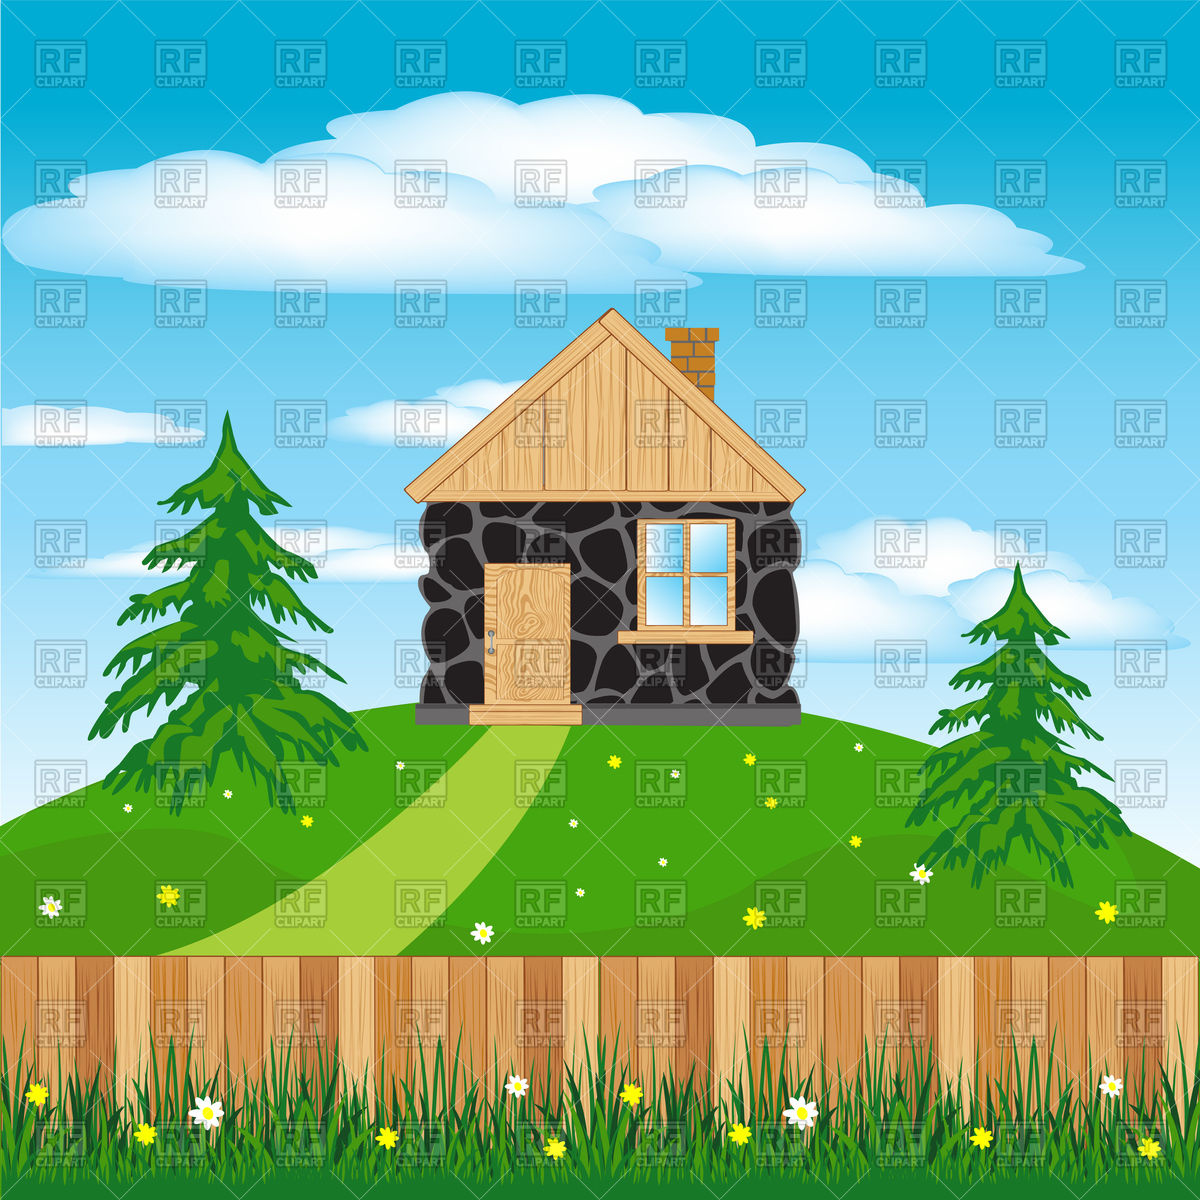 Log cabin and wooden fence.